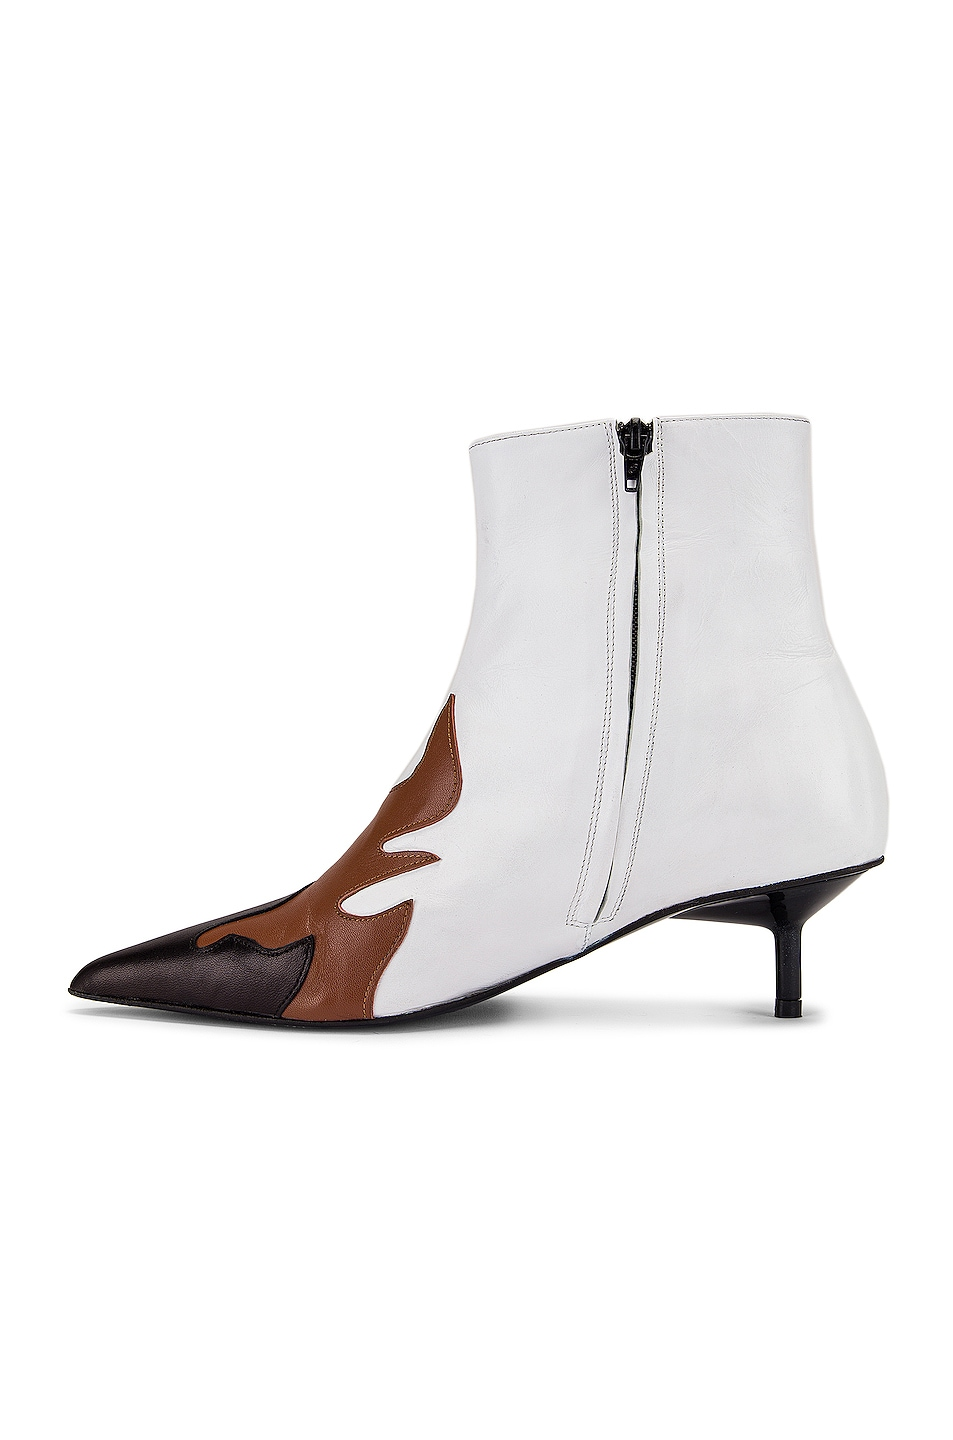 Image 5 of Marques ' Almeida Pointy Kitten Heel Flame Boot in White, Brown & Black